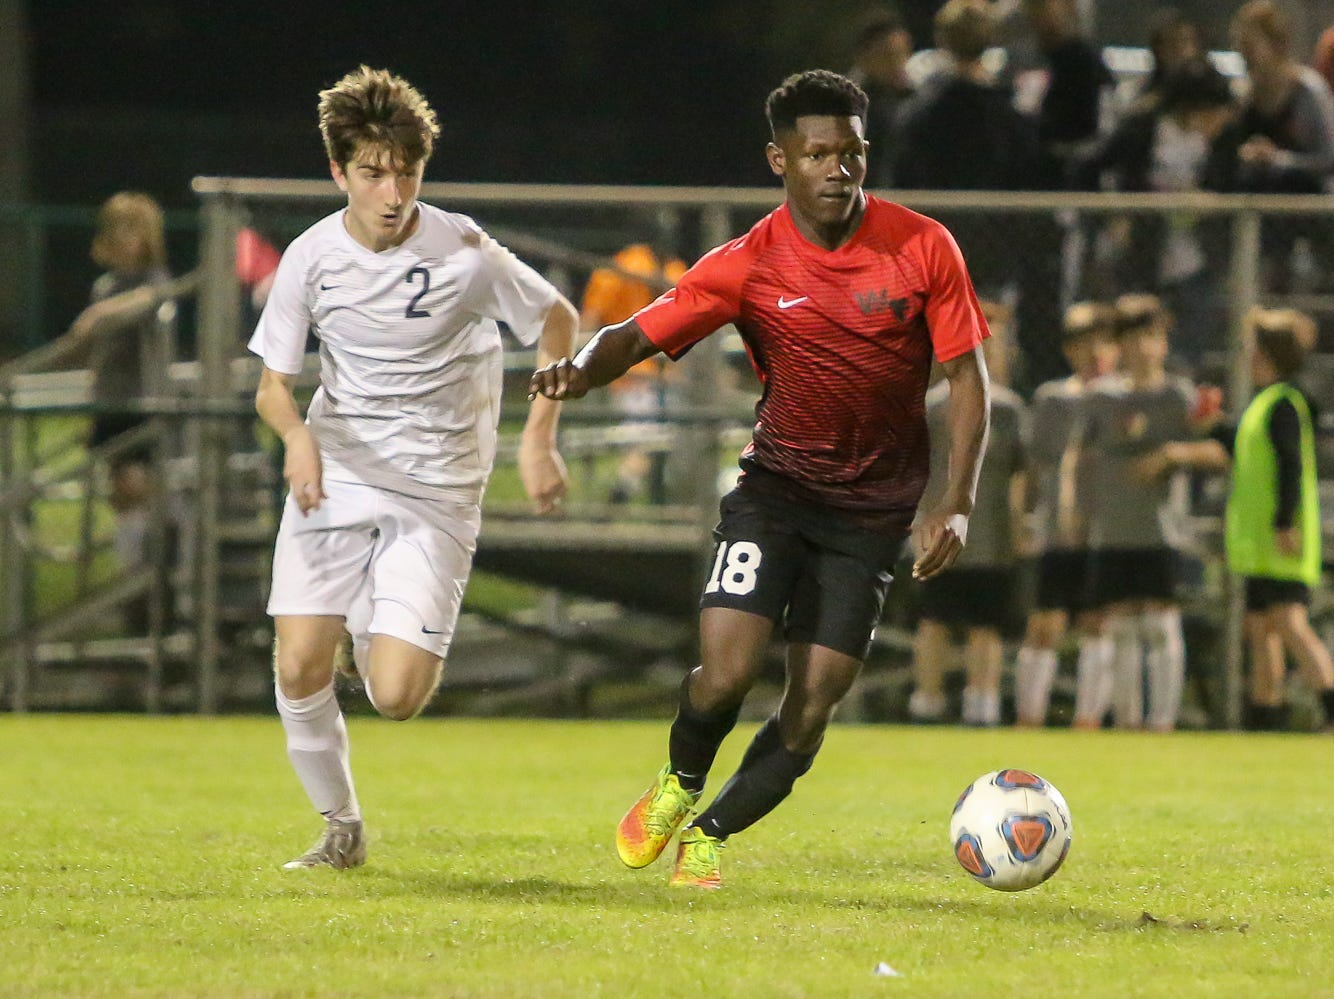 West Florida's Greg Hardy (18) moves the ball up the field as Mosley's Markus McNally (2) chases after him in the Region 1-3A quarterfinal game at Ashton Brosnaham Park on Wednesday, February 6, 2019. Mosley beat West Florida 2-1 and advances to the next round.